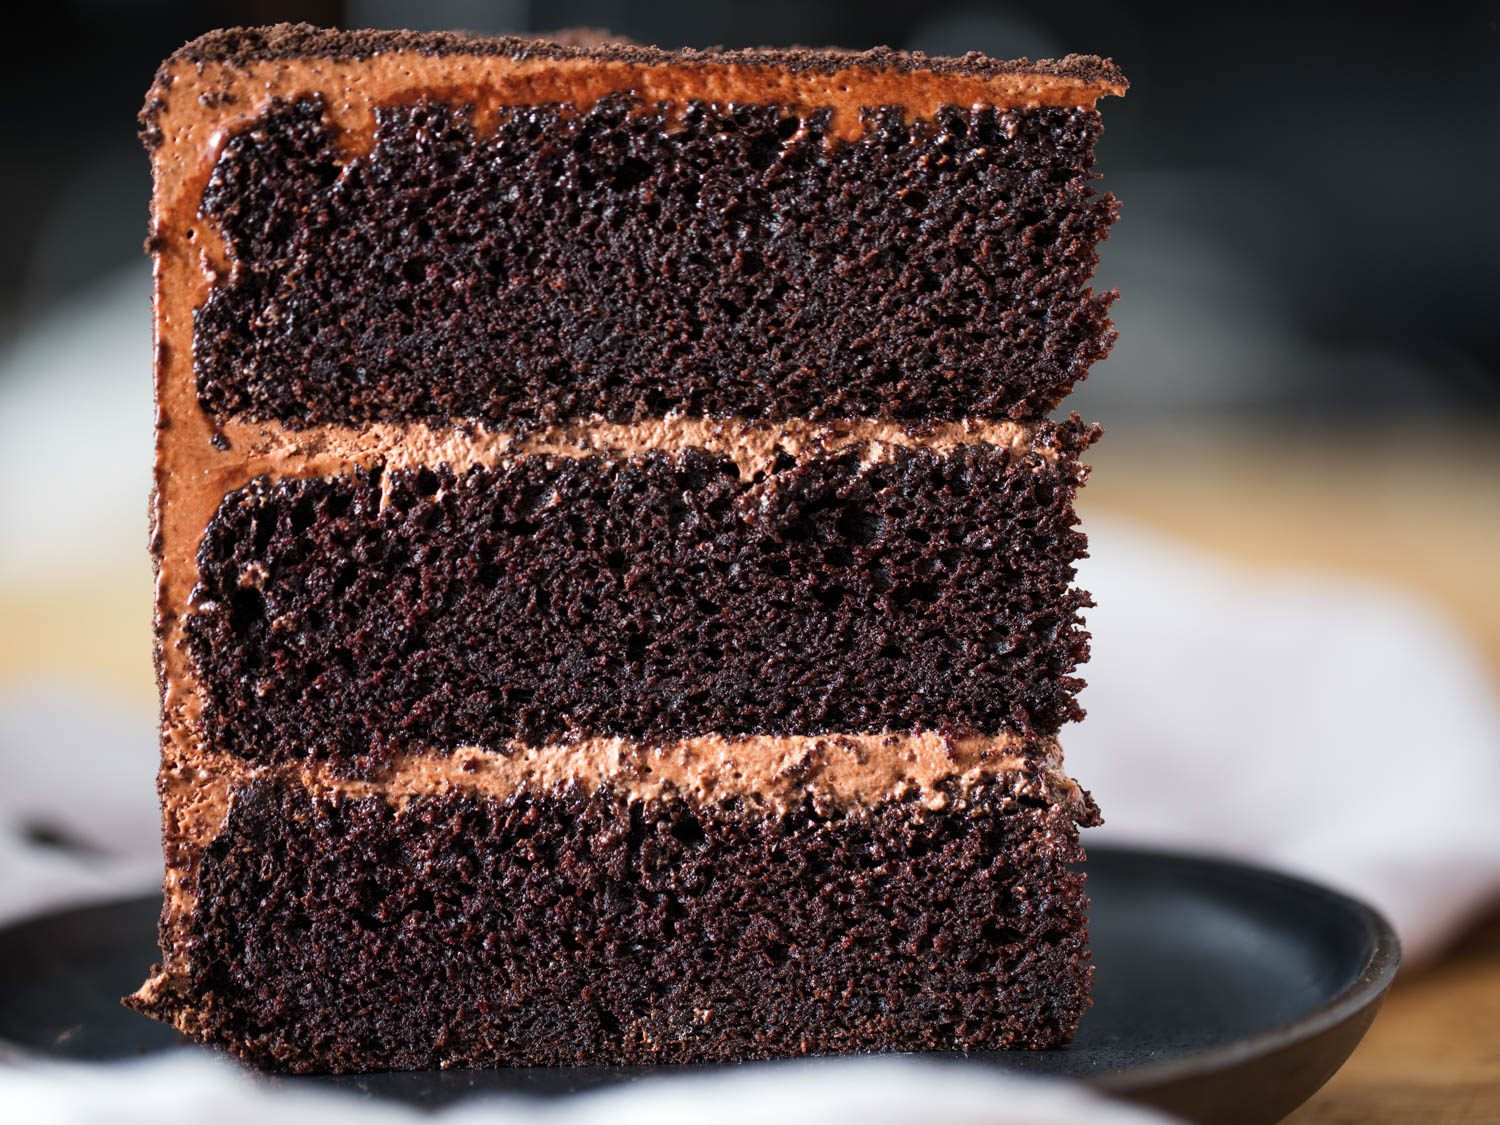 Top 5 Ultimate Cake Treats To Enjoy This Summer